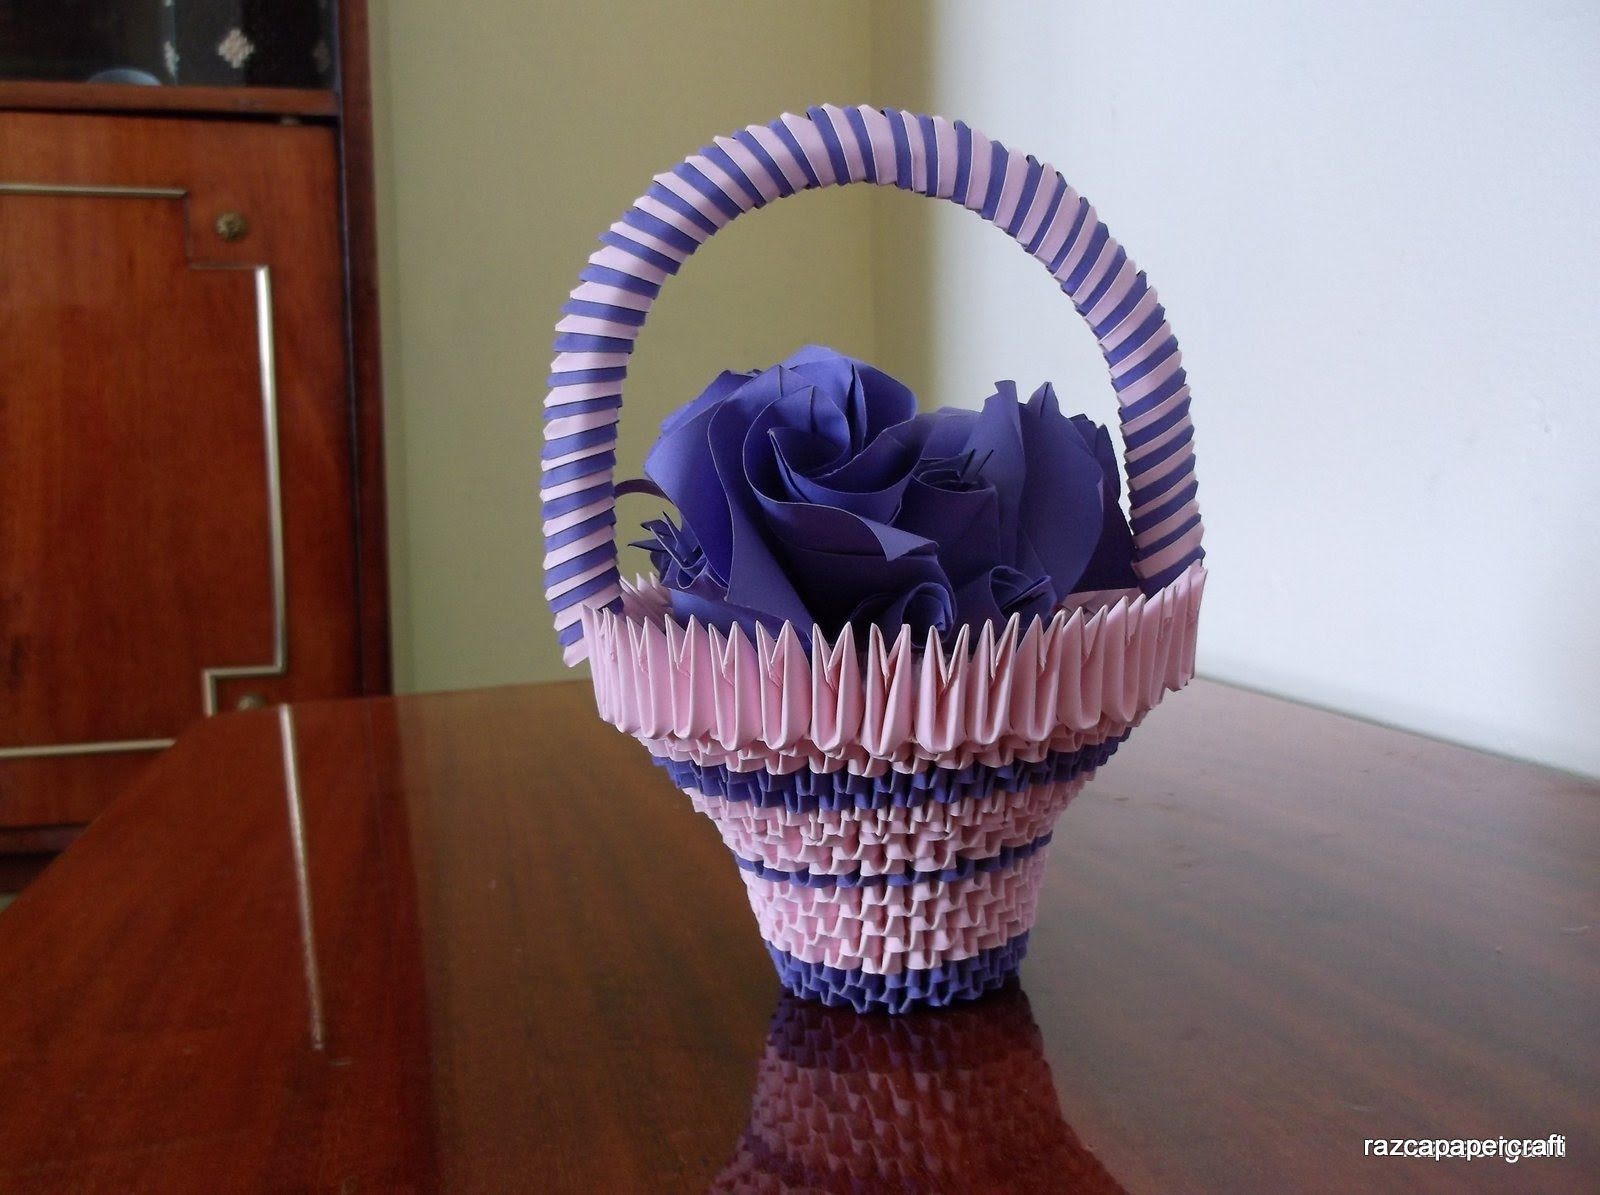 How To Make 3d Origami Bascket With Flowers Things To Make And Do